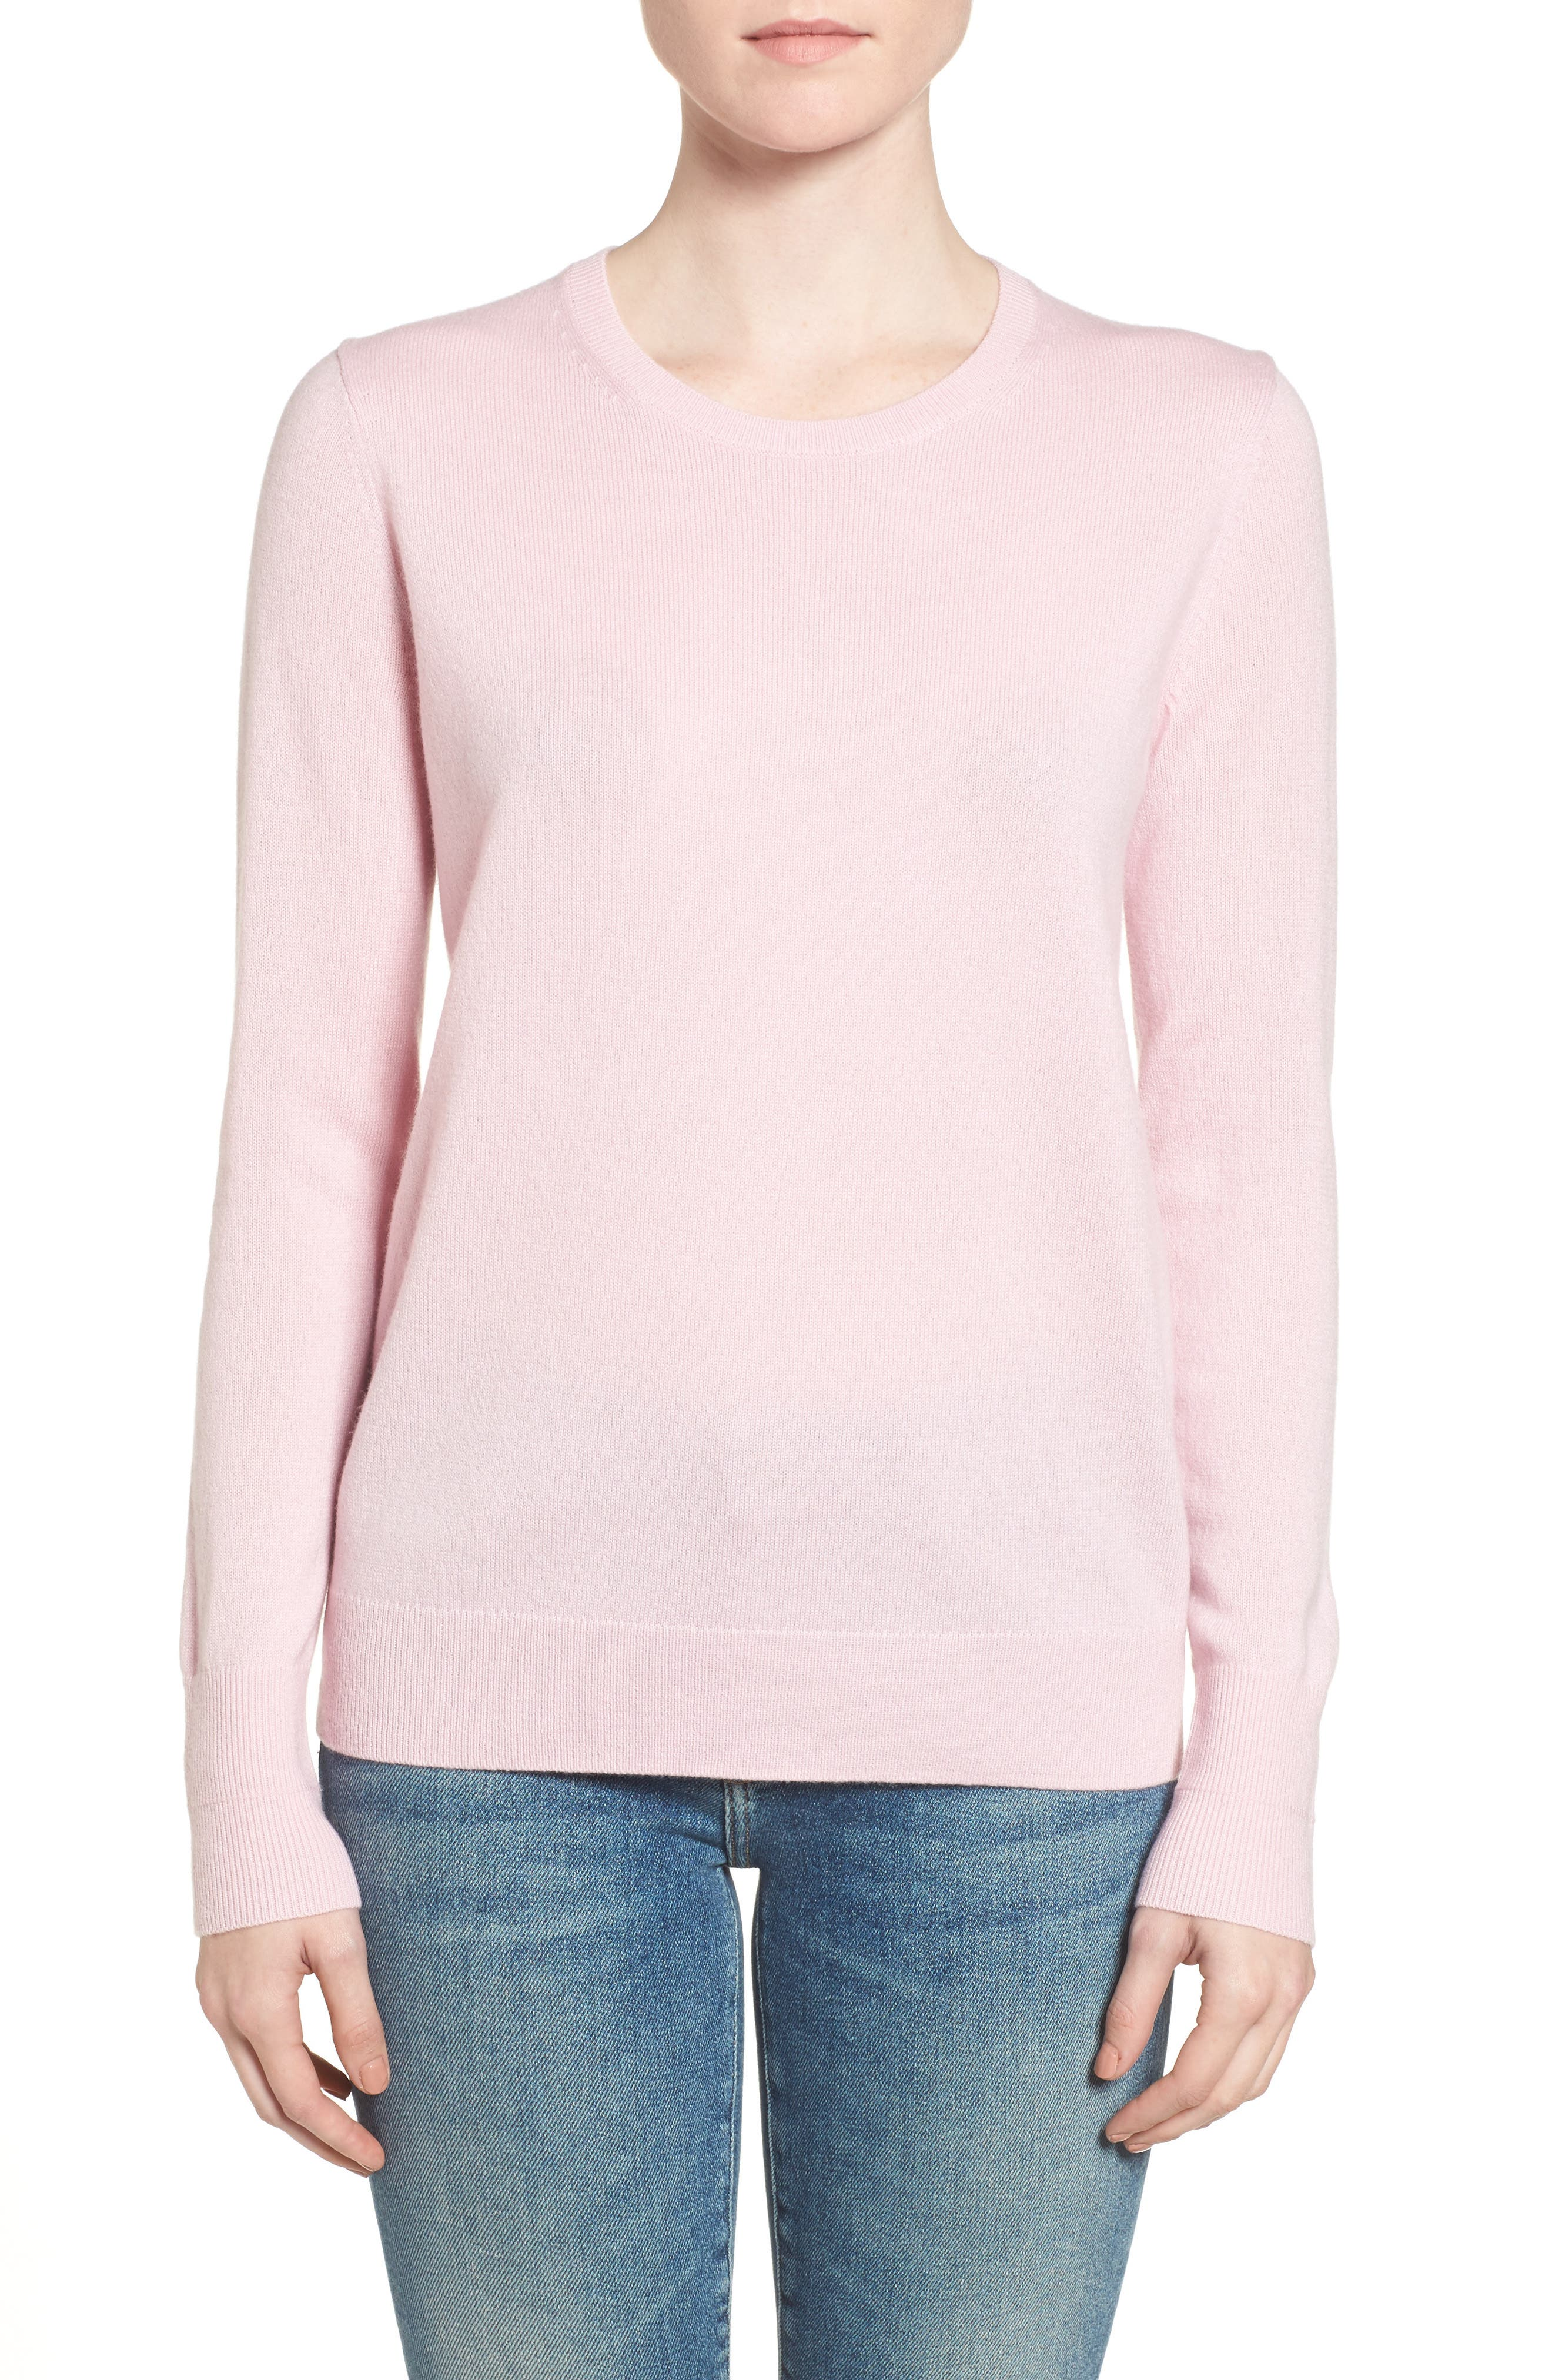 Everlane The Cashmere Crew Sweater